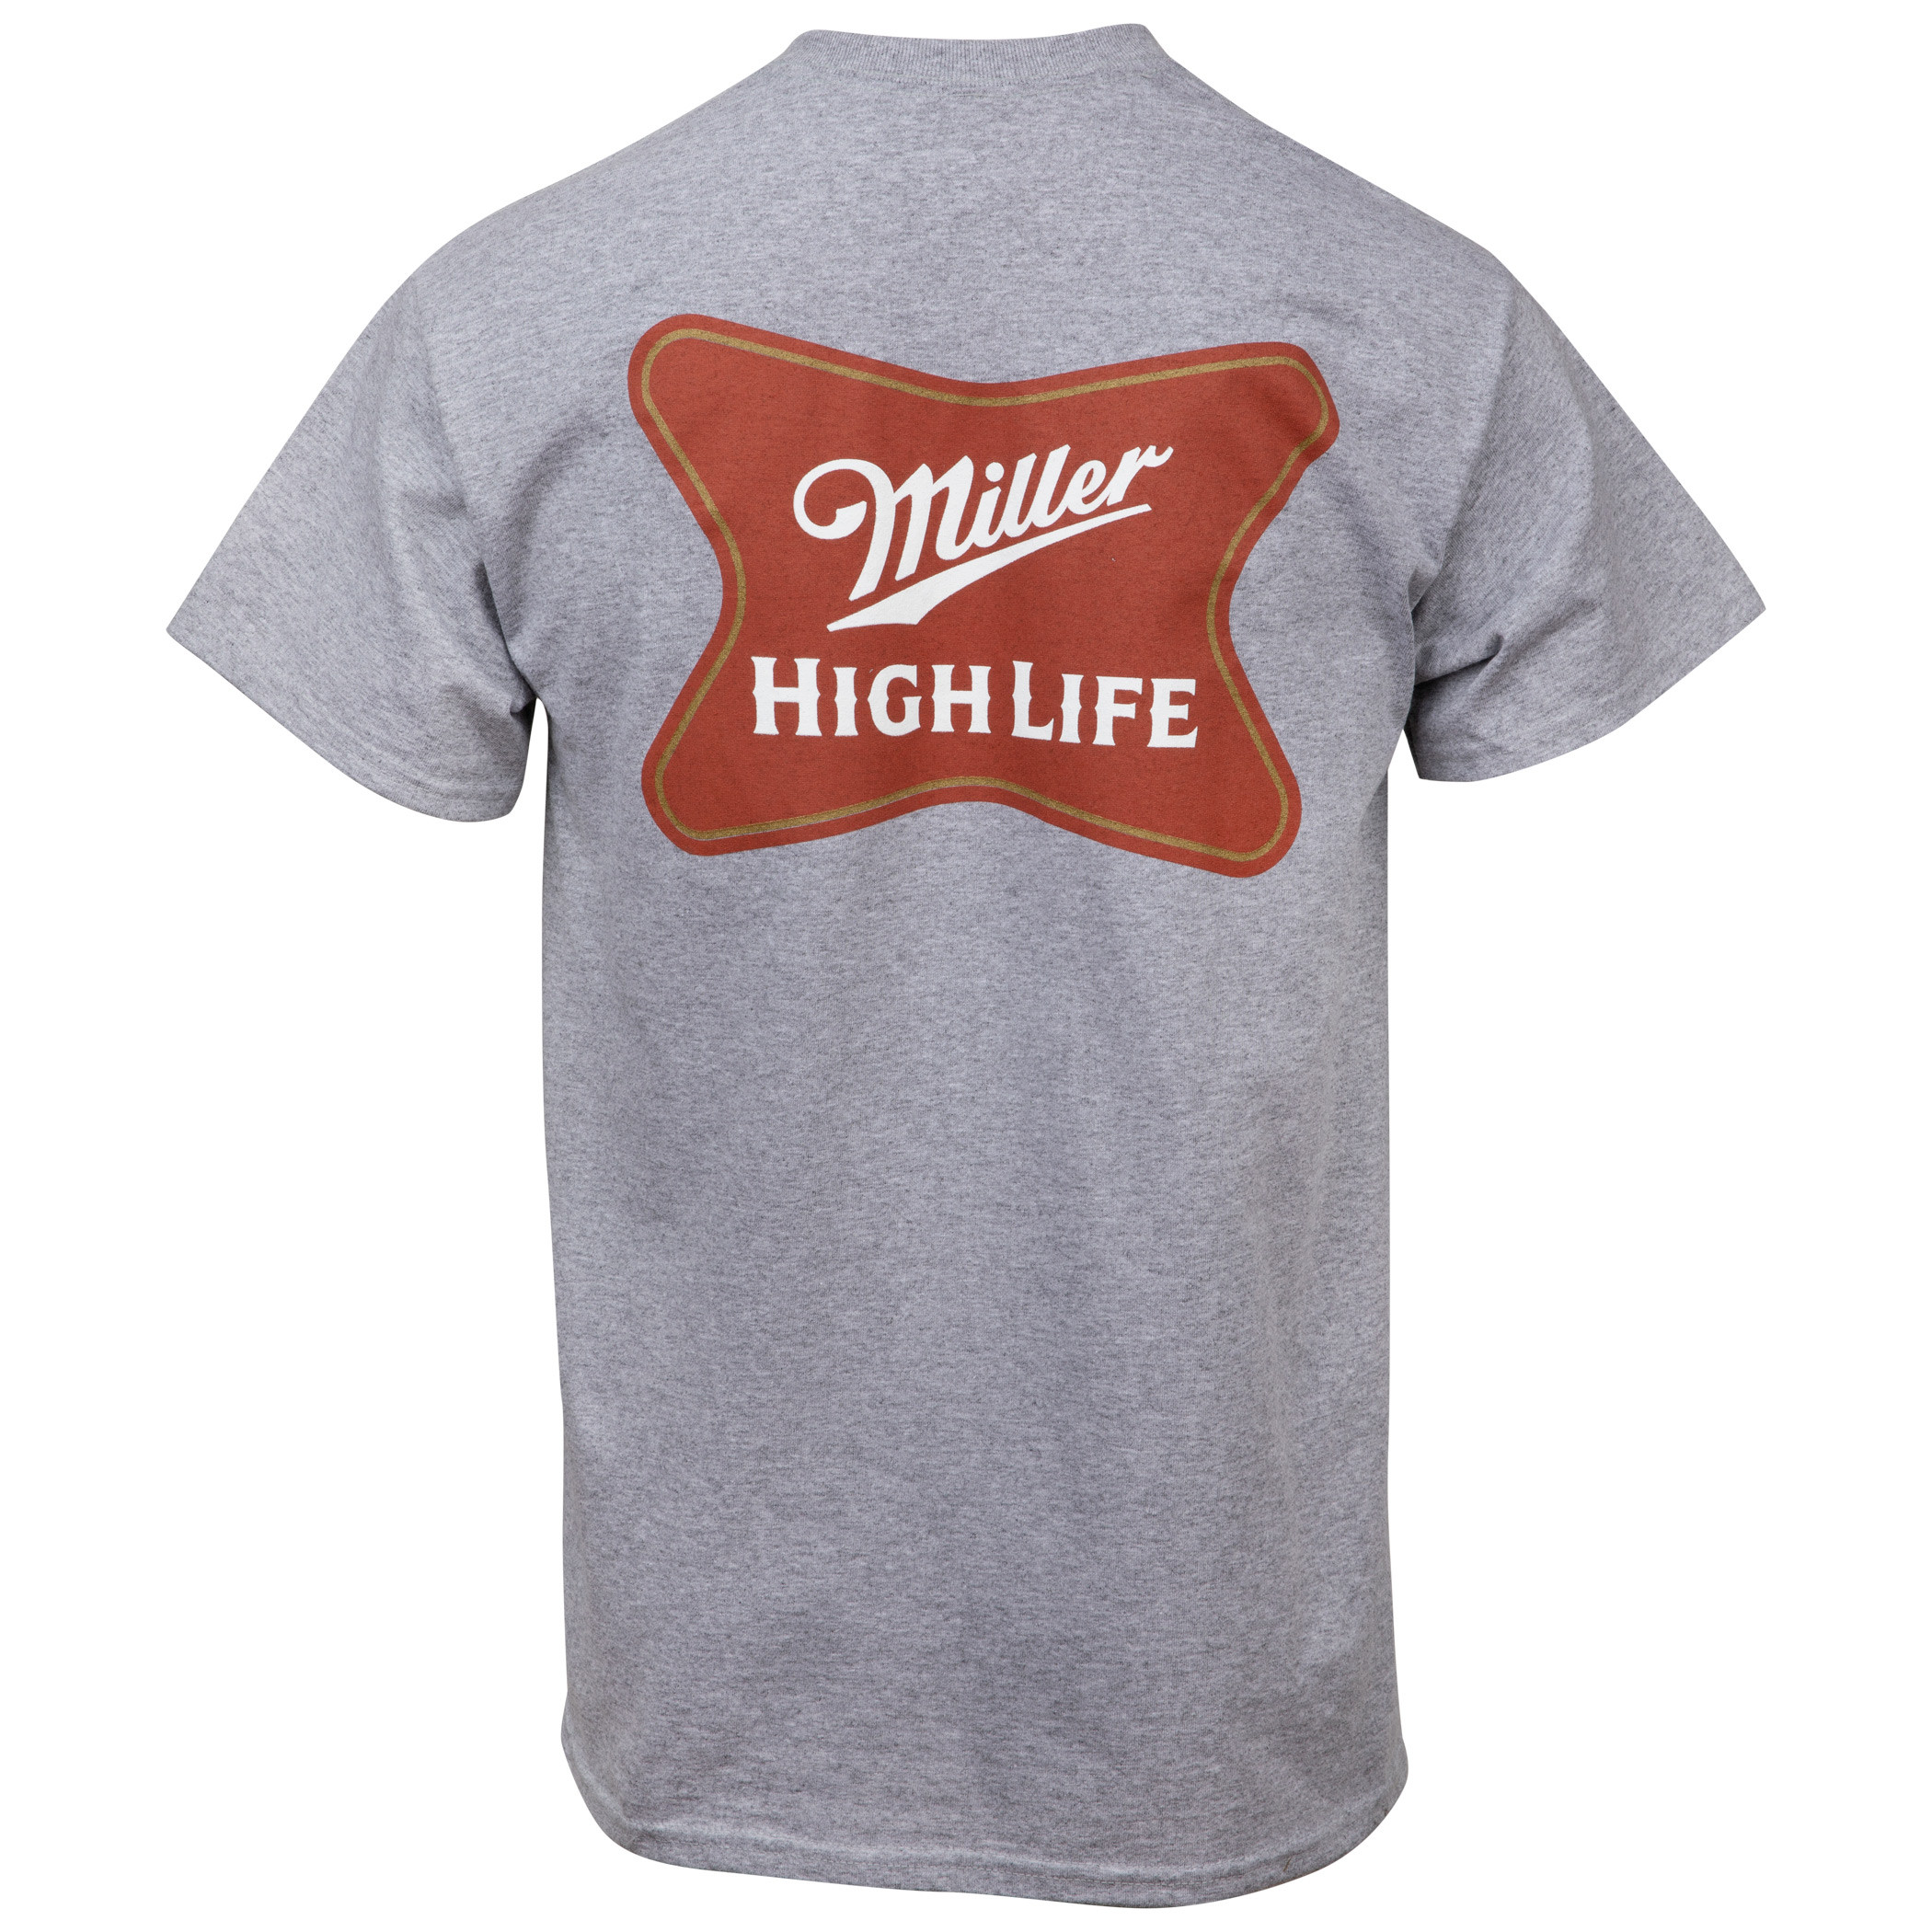 Miller High Life Logo Front and Back Print Pocket T-Shirt